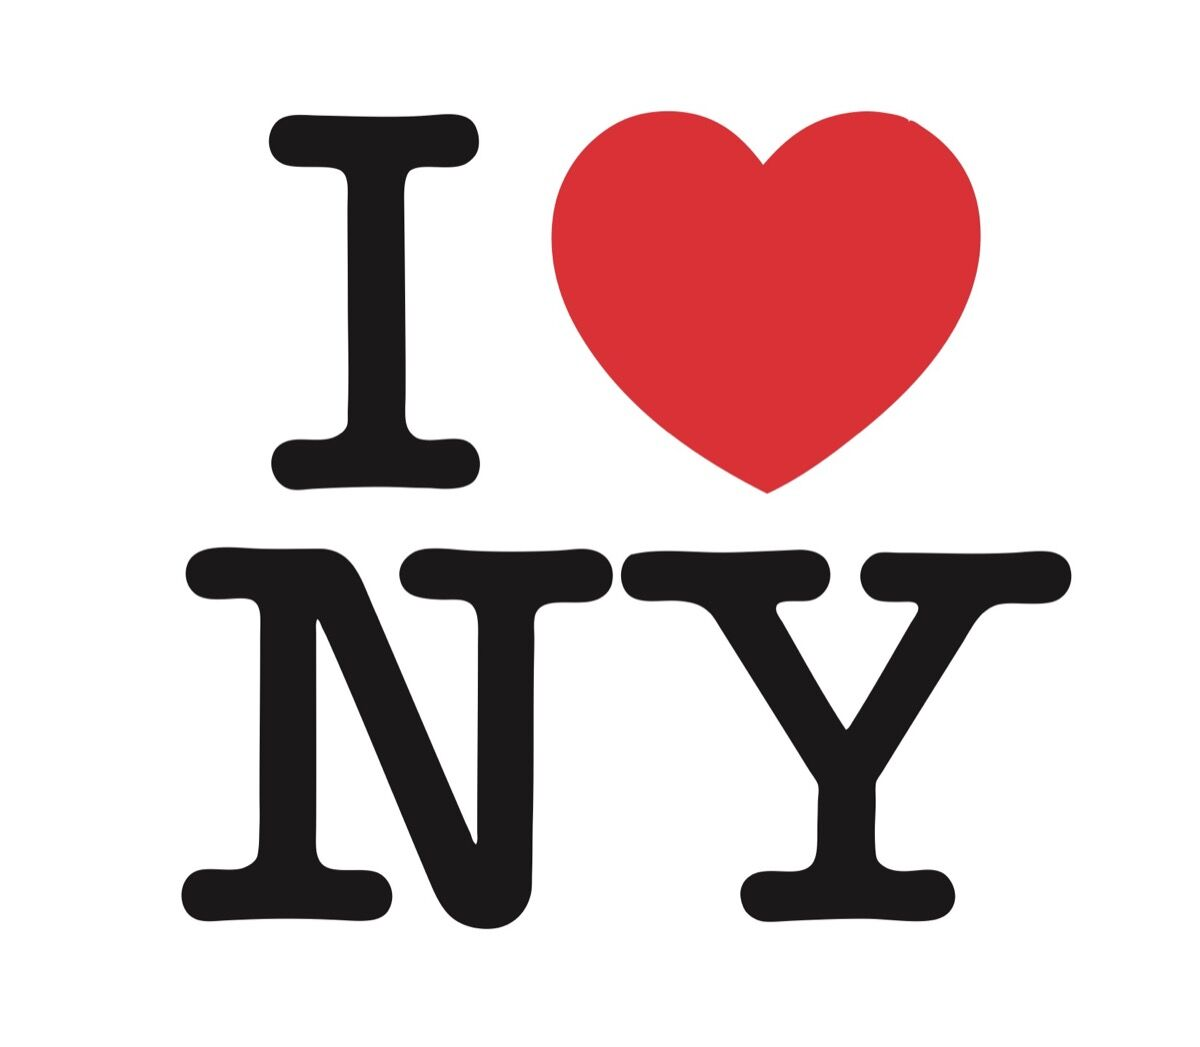 How milton glasers iconic logo made the world love new york again courtesy of milton glaser inc biocorpaavc Images